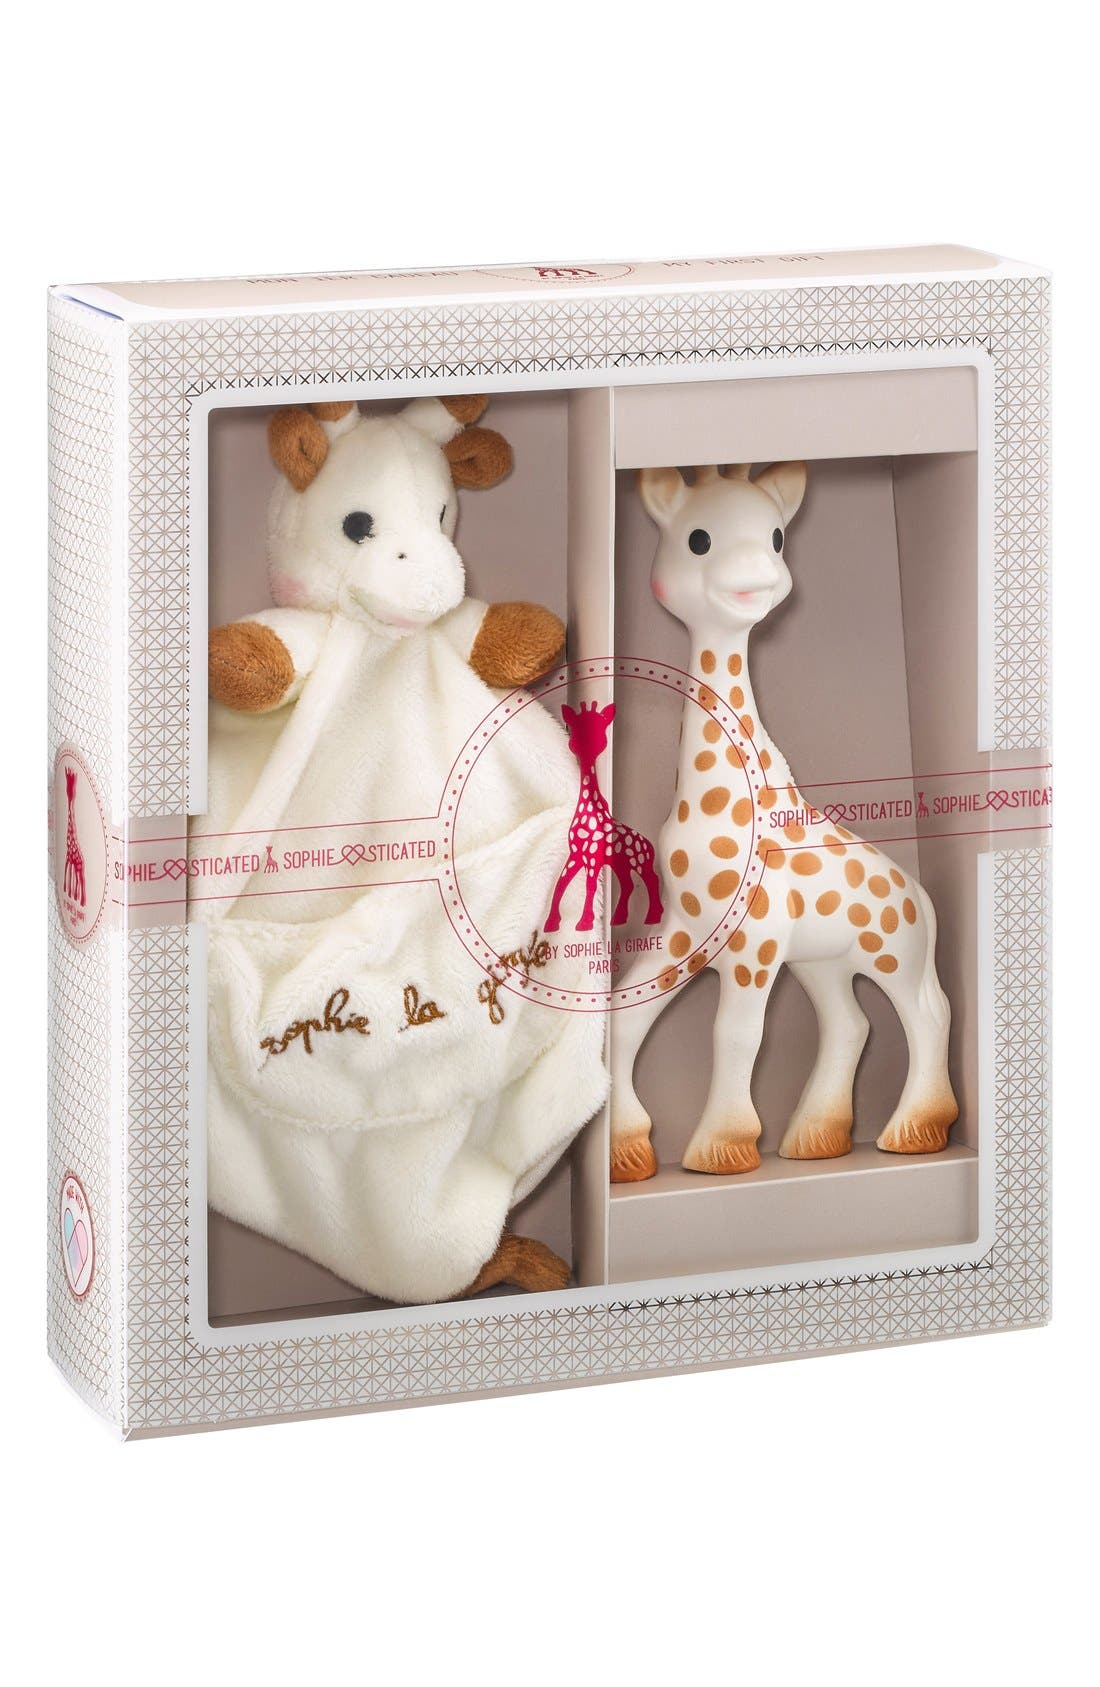 SOPHIE LA GIRAFE 'Sophiesticated' Plush Toy & Teething Toy, Main, color, CREAM